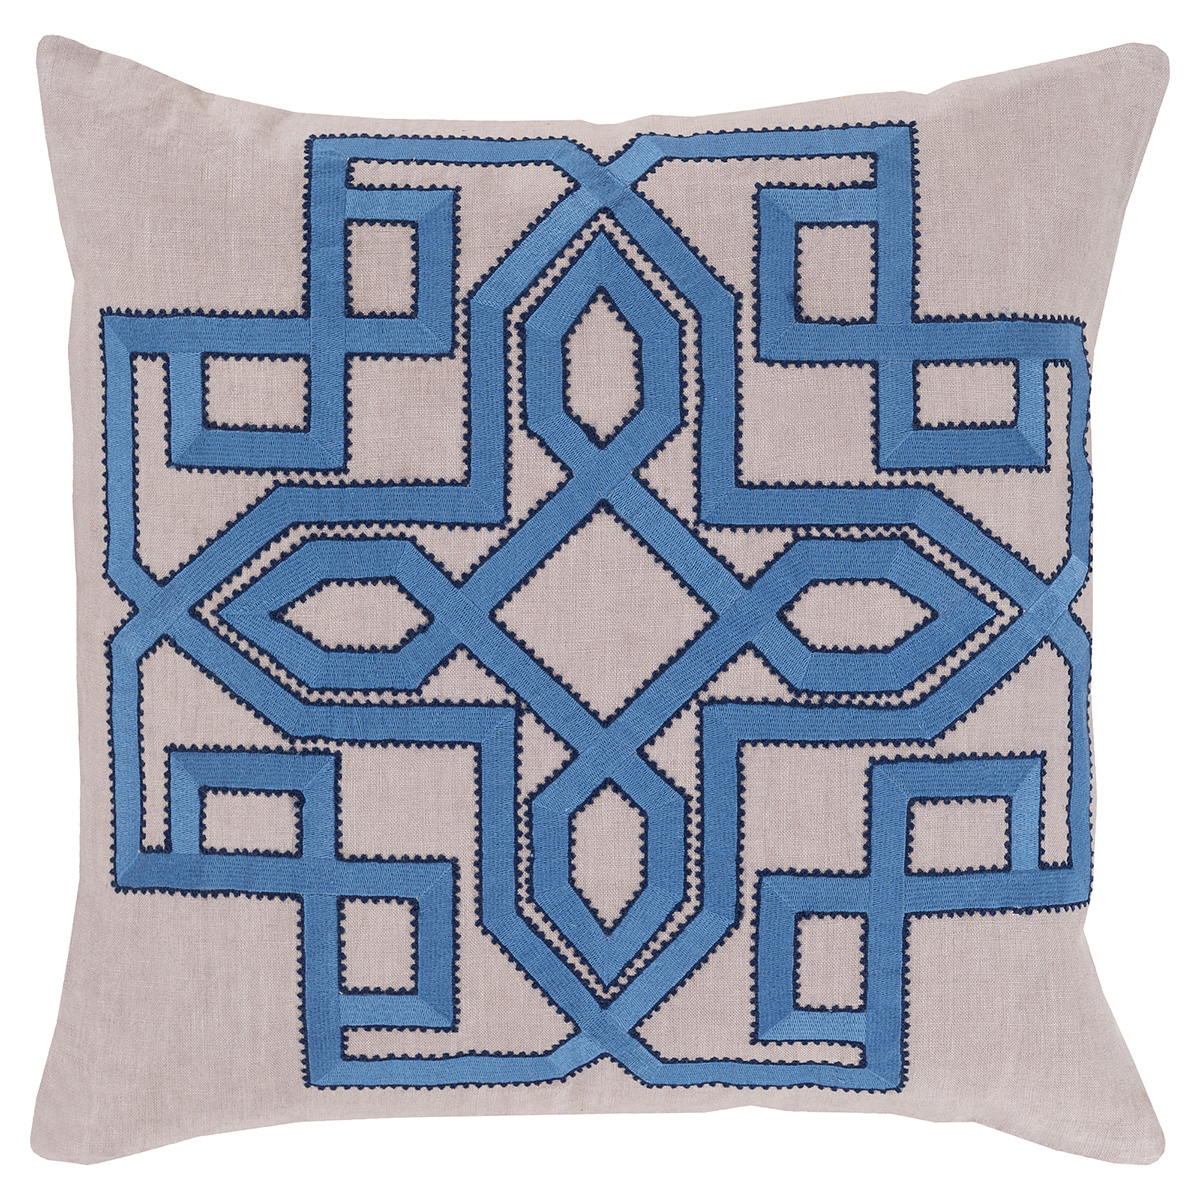 Nesbit Regency Sky Blue Medallion Beige Linen Pillow - 22x22